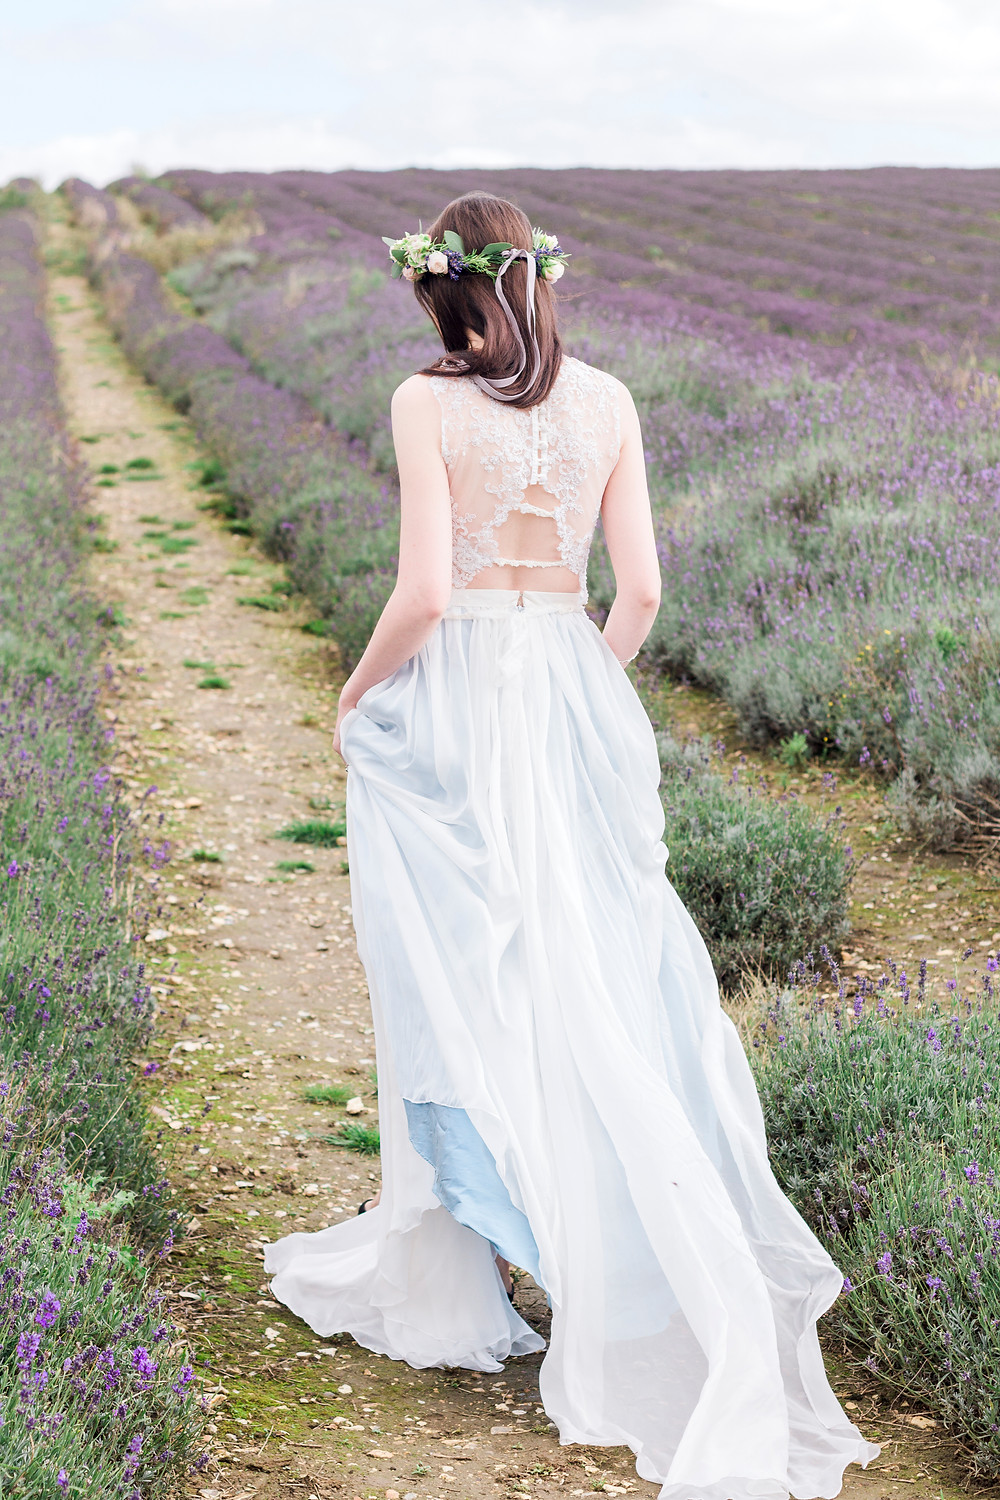 Bridal separates by Jessica Turner Designs.  Lavender styled shoot for a boho bride